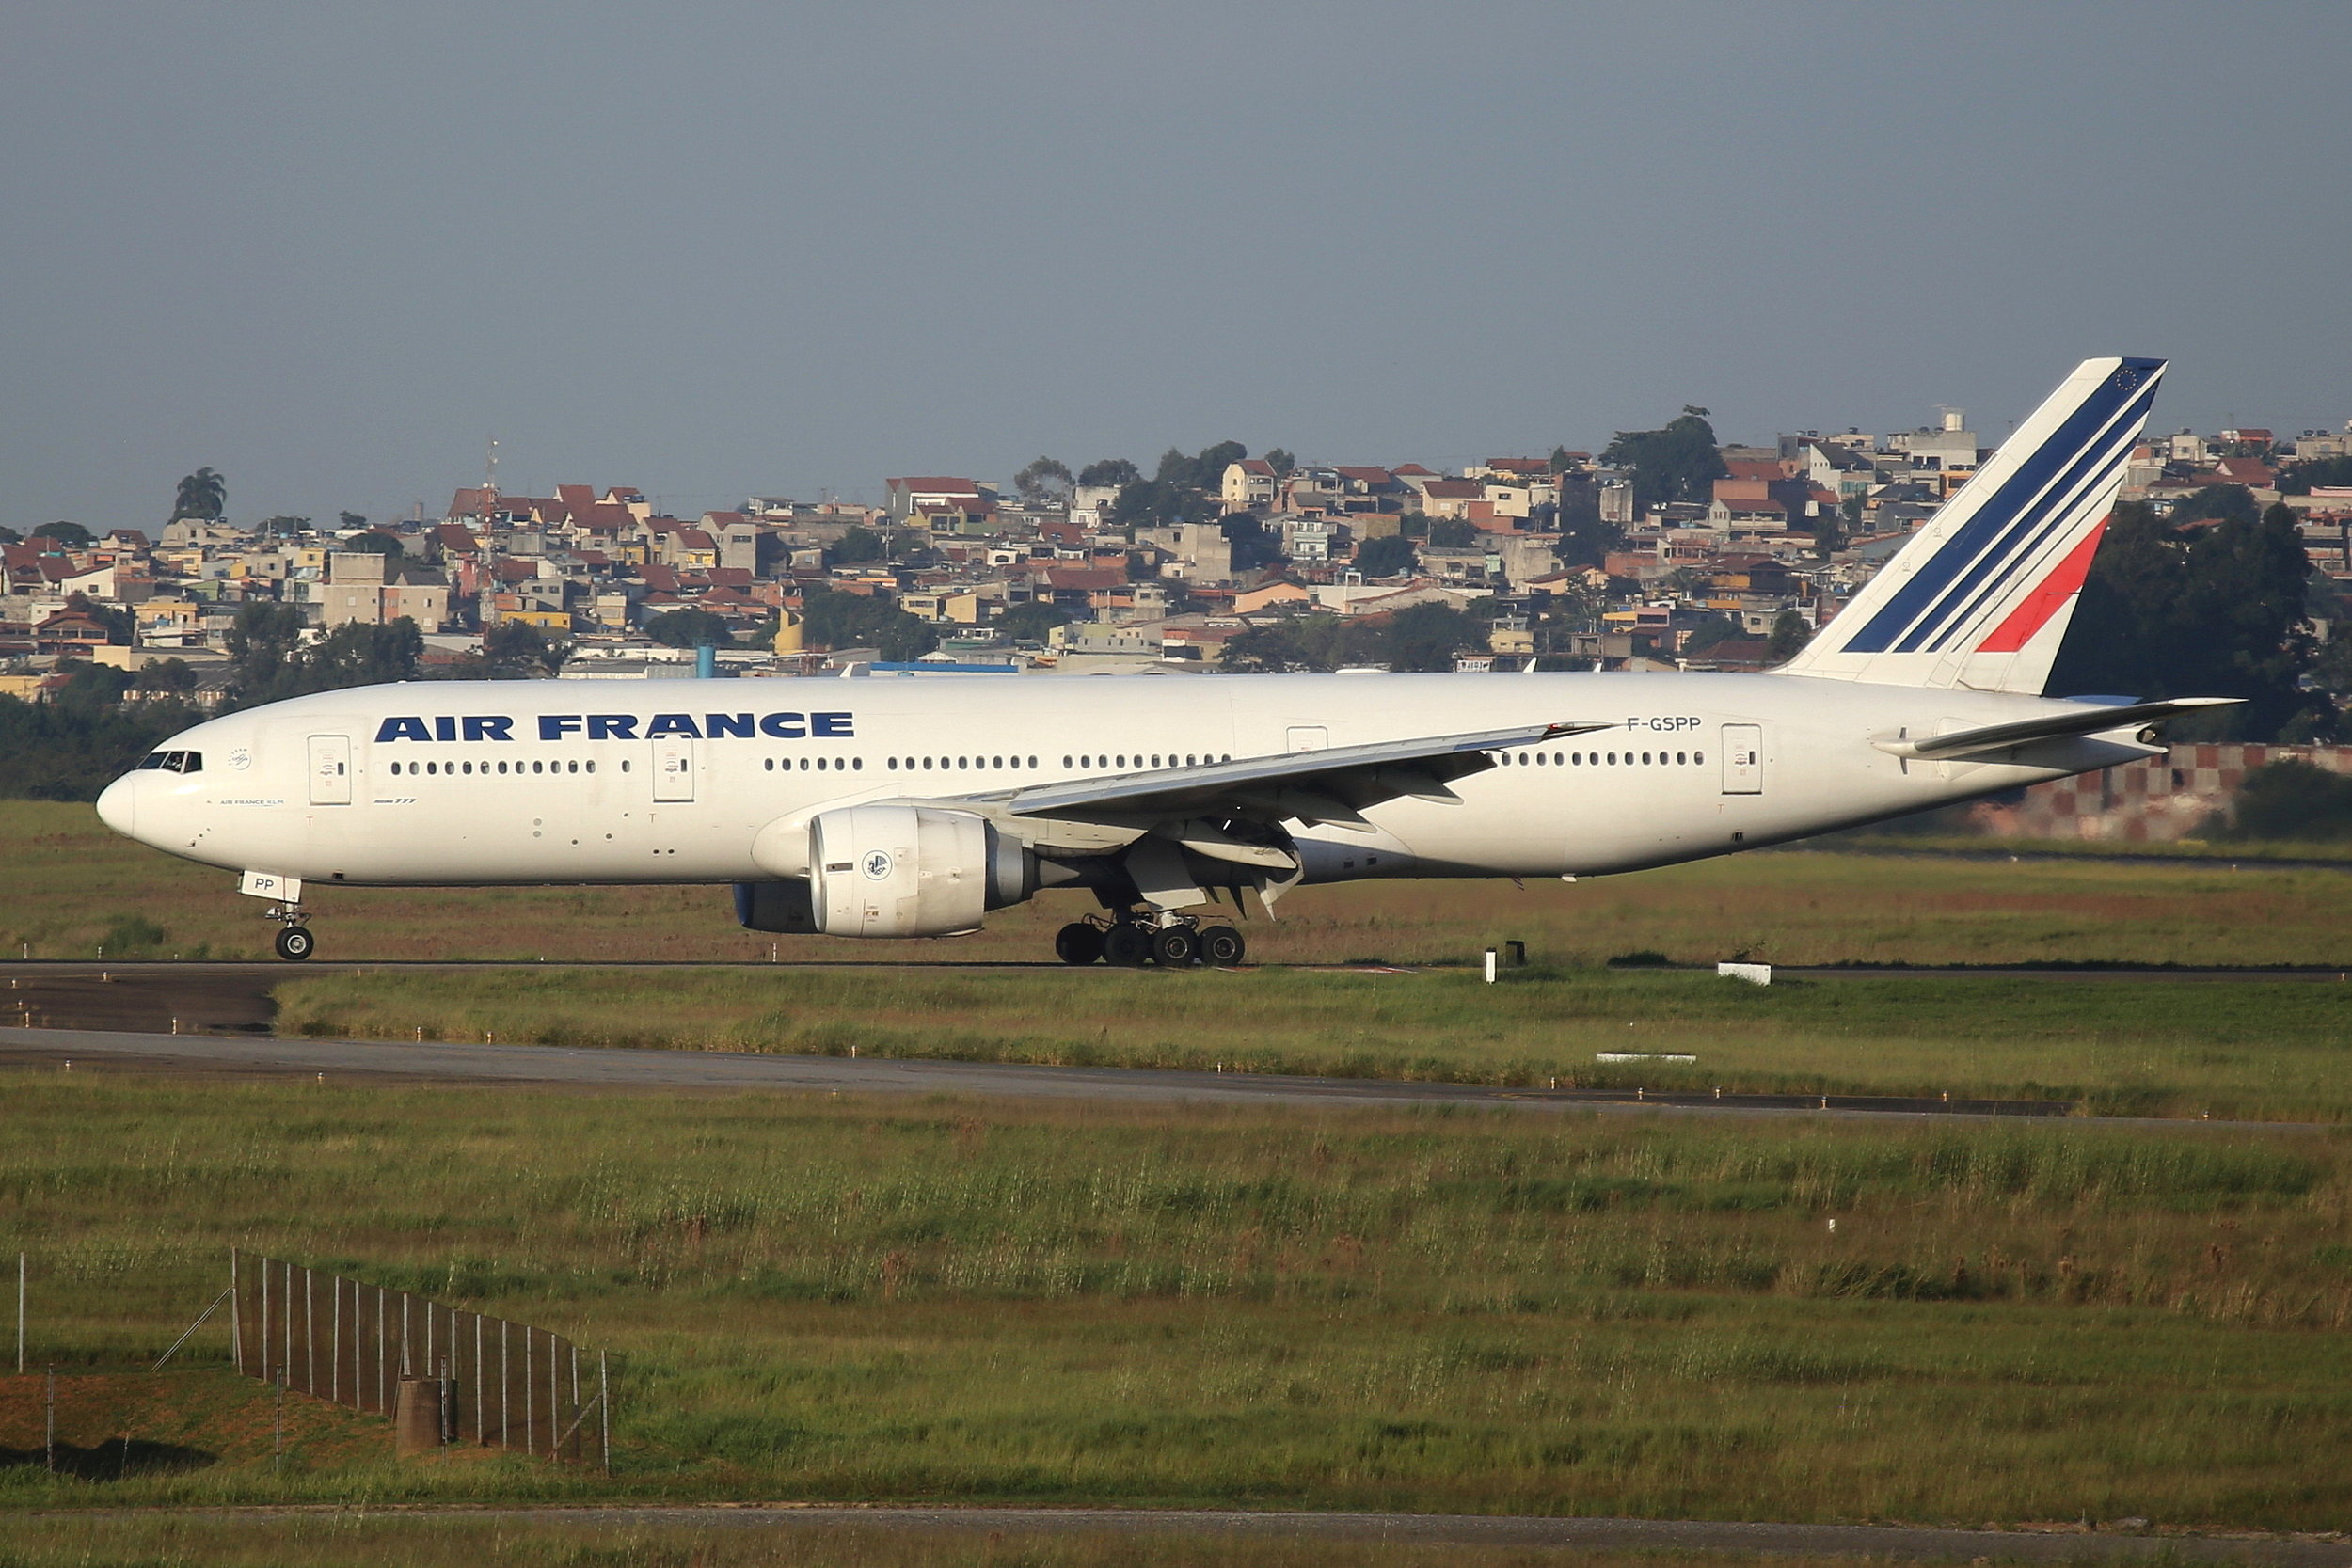 F-GSPP Air France B777-2 taken from the roof of the Matiz Hotel at Sao Paulo Guarulhos Airport 27th April 2019 by John Wood